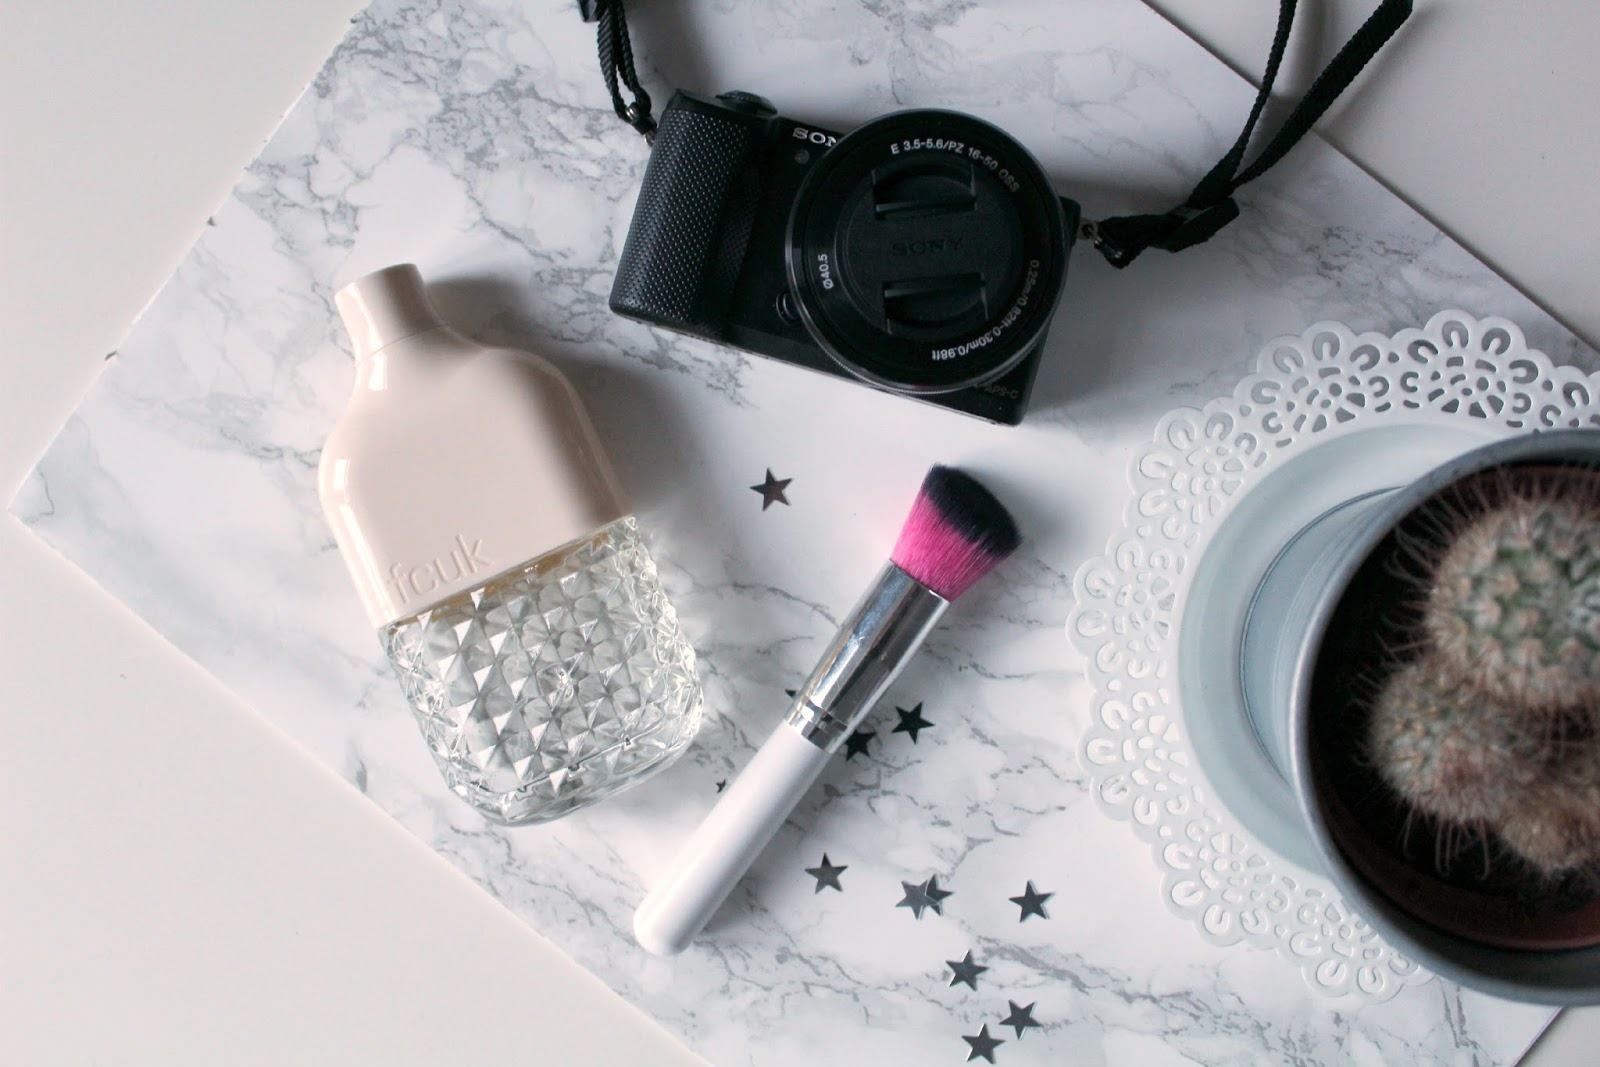 blogger tips and tricks how to guide beginners photography tips flatlays editors tools